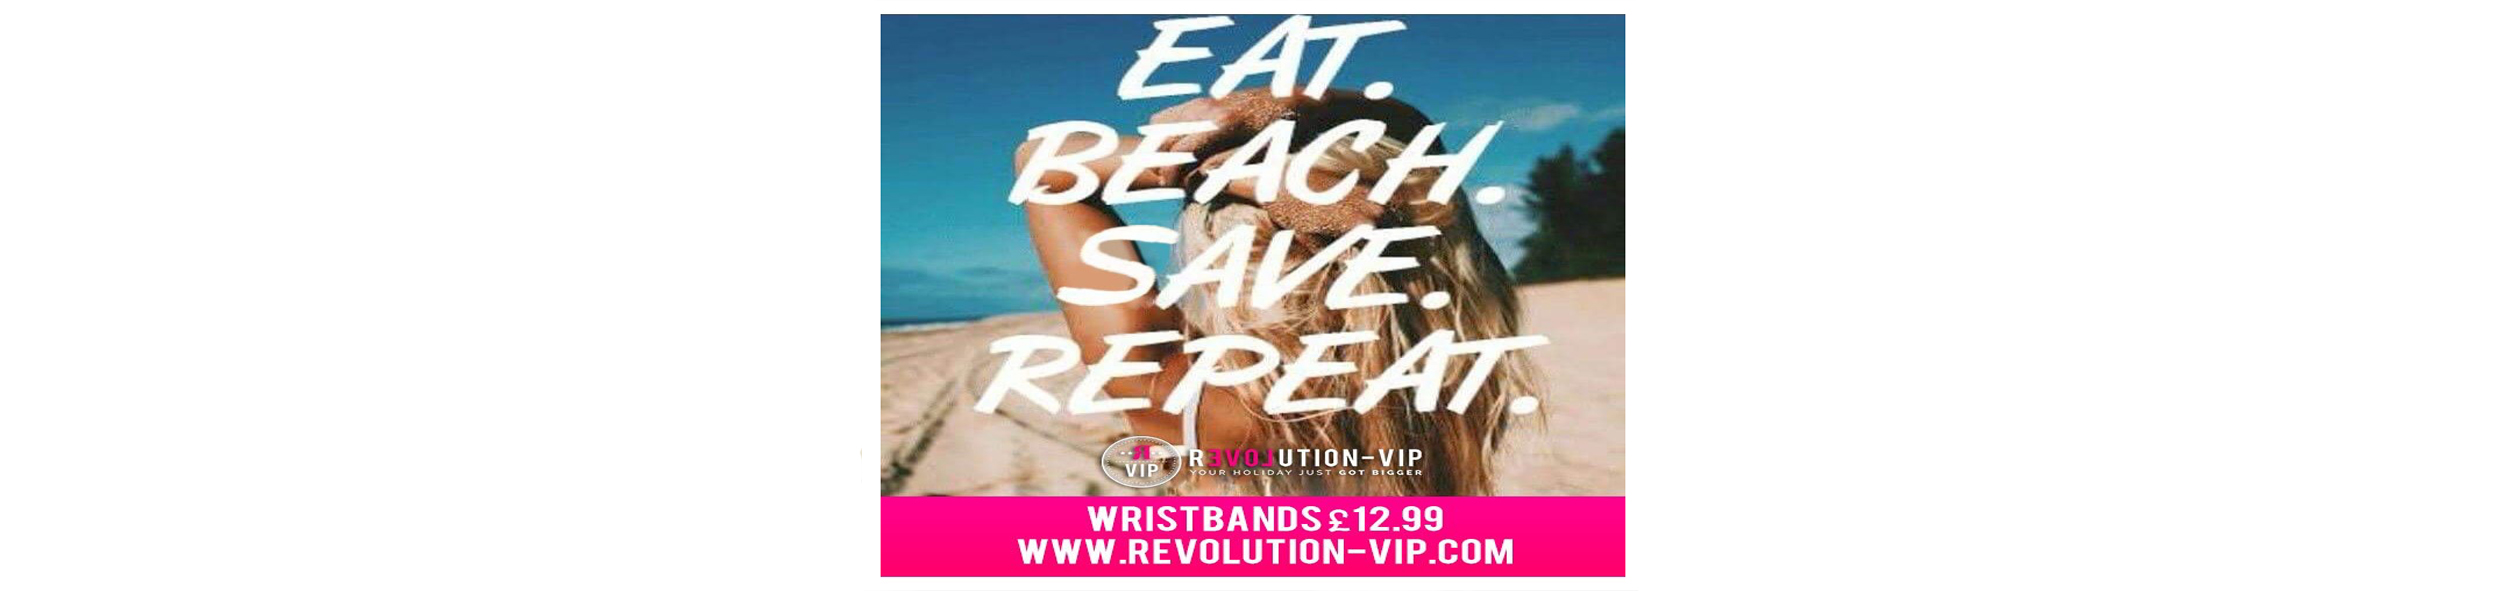 eat beach rave repeat